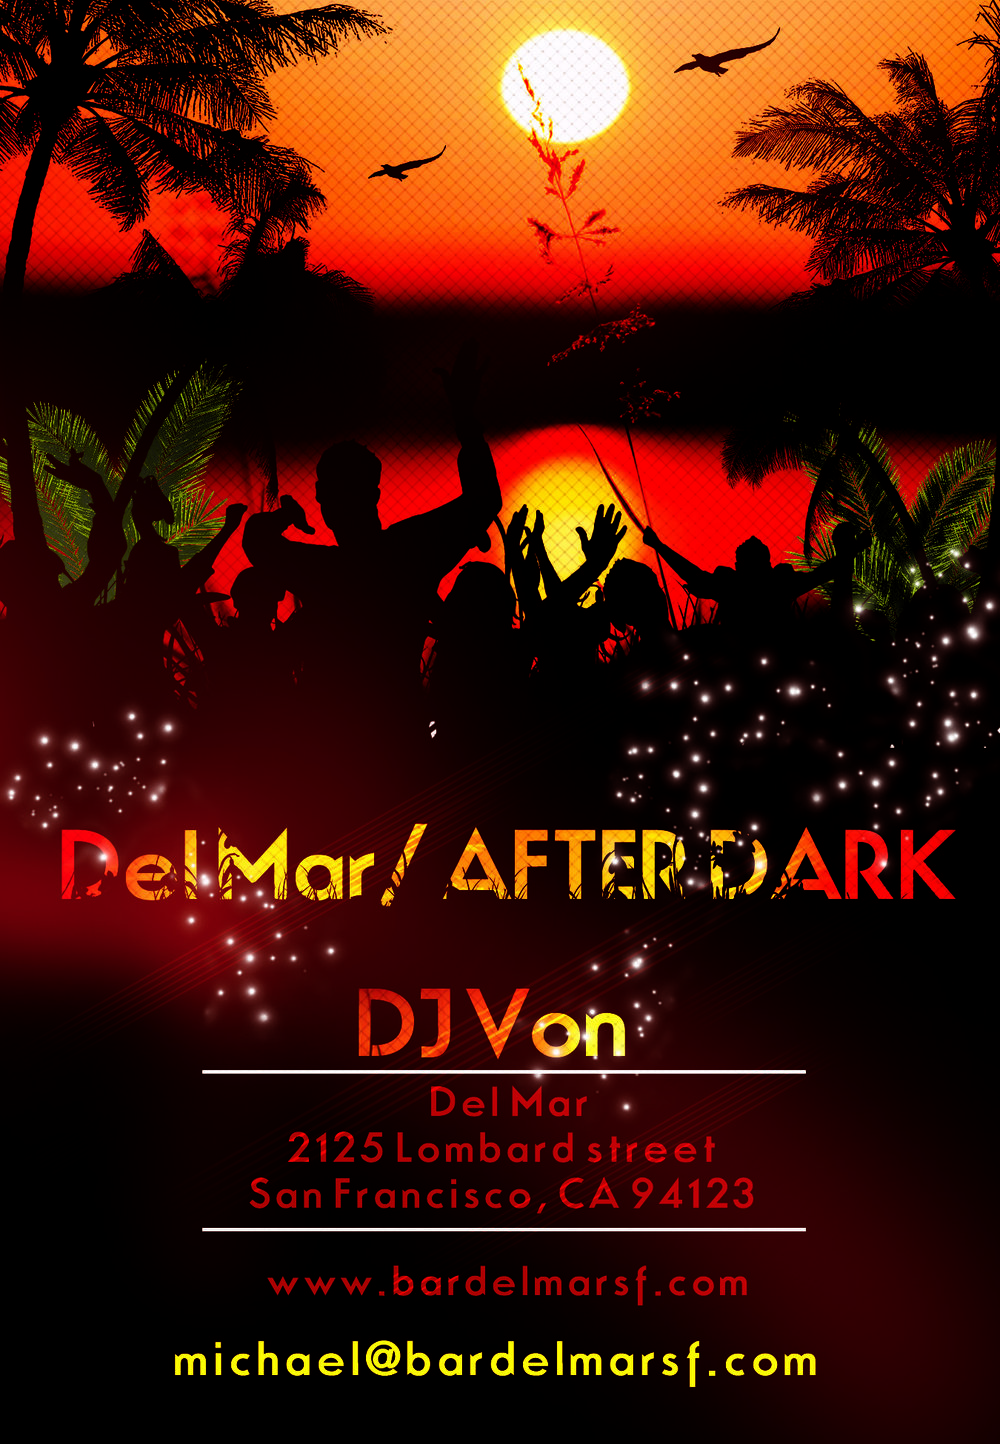 Del Mar After Dark flyer Dj Von.jpg